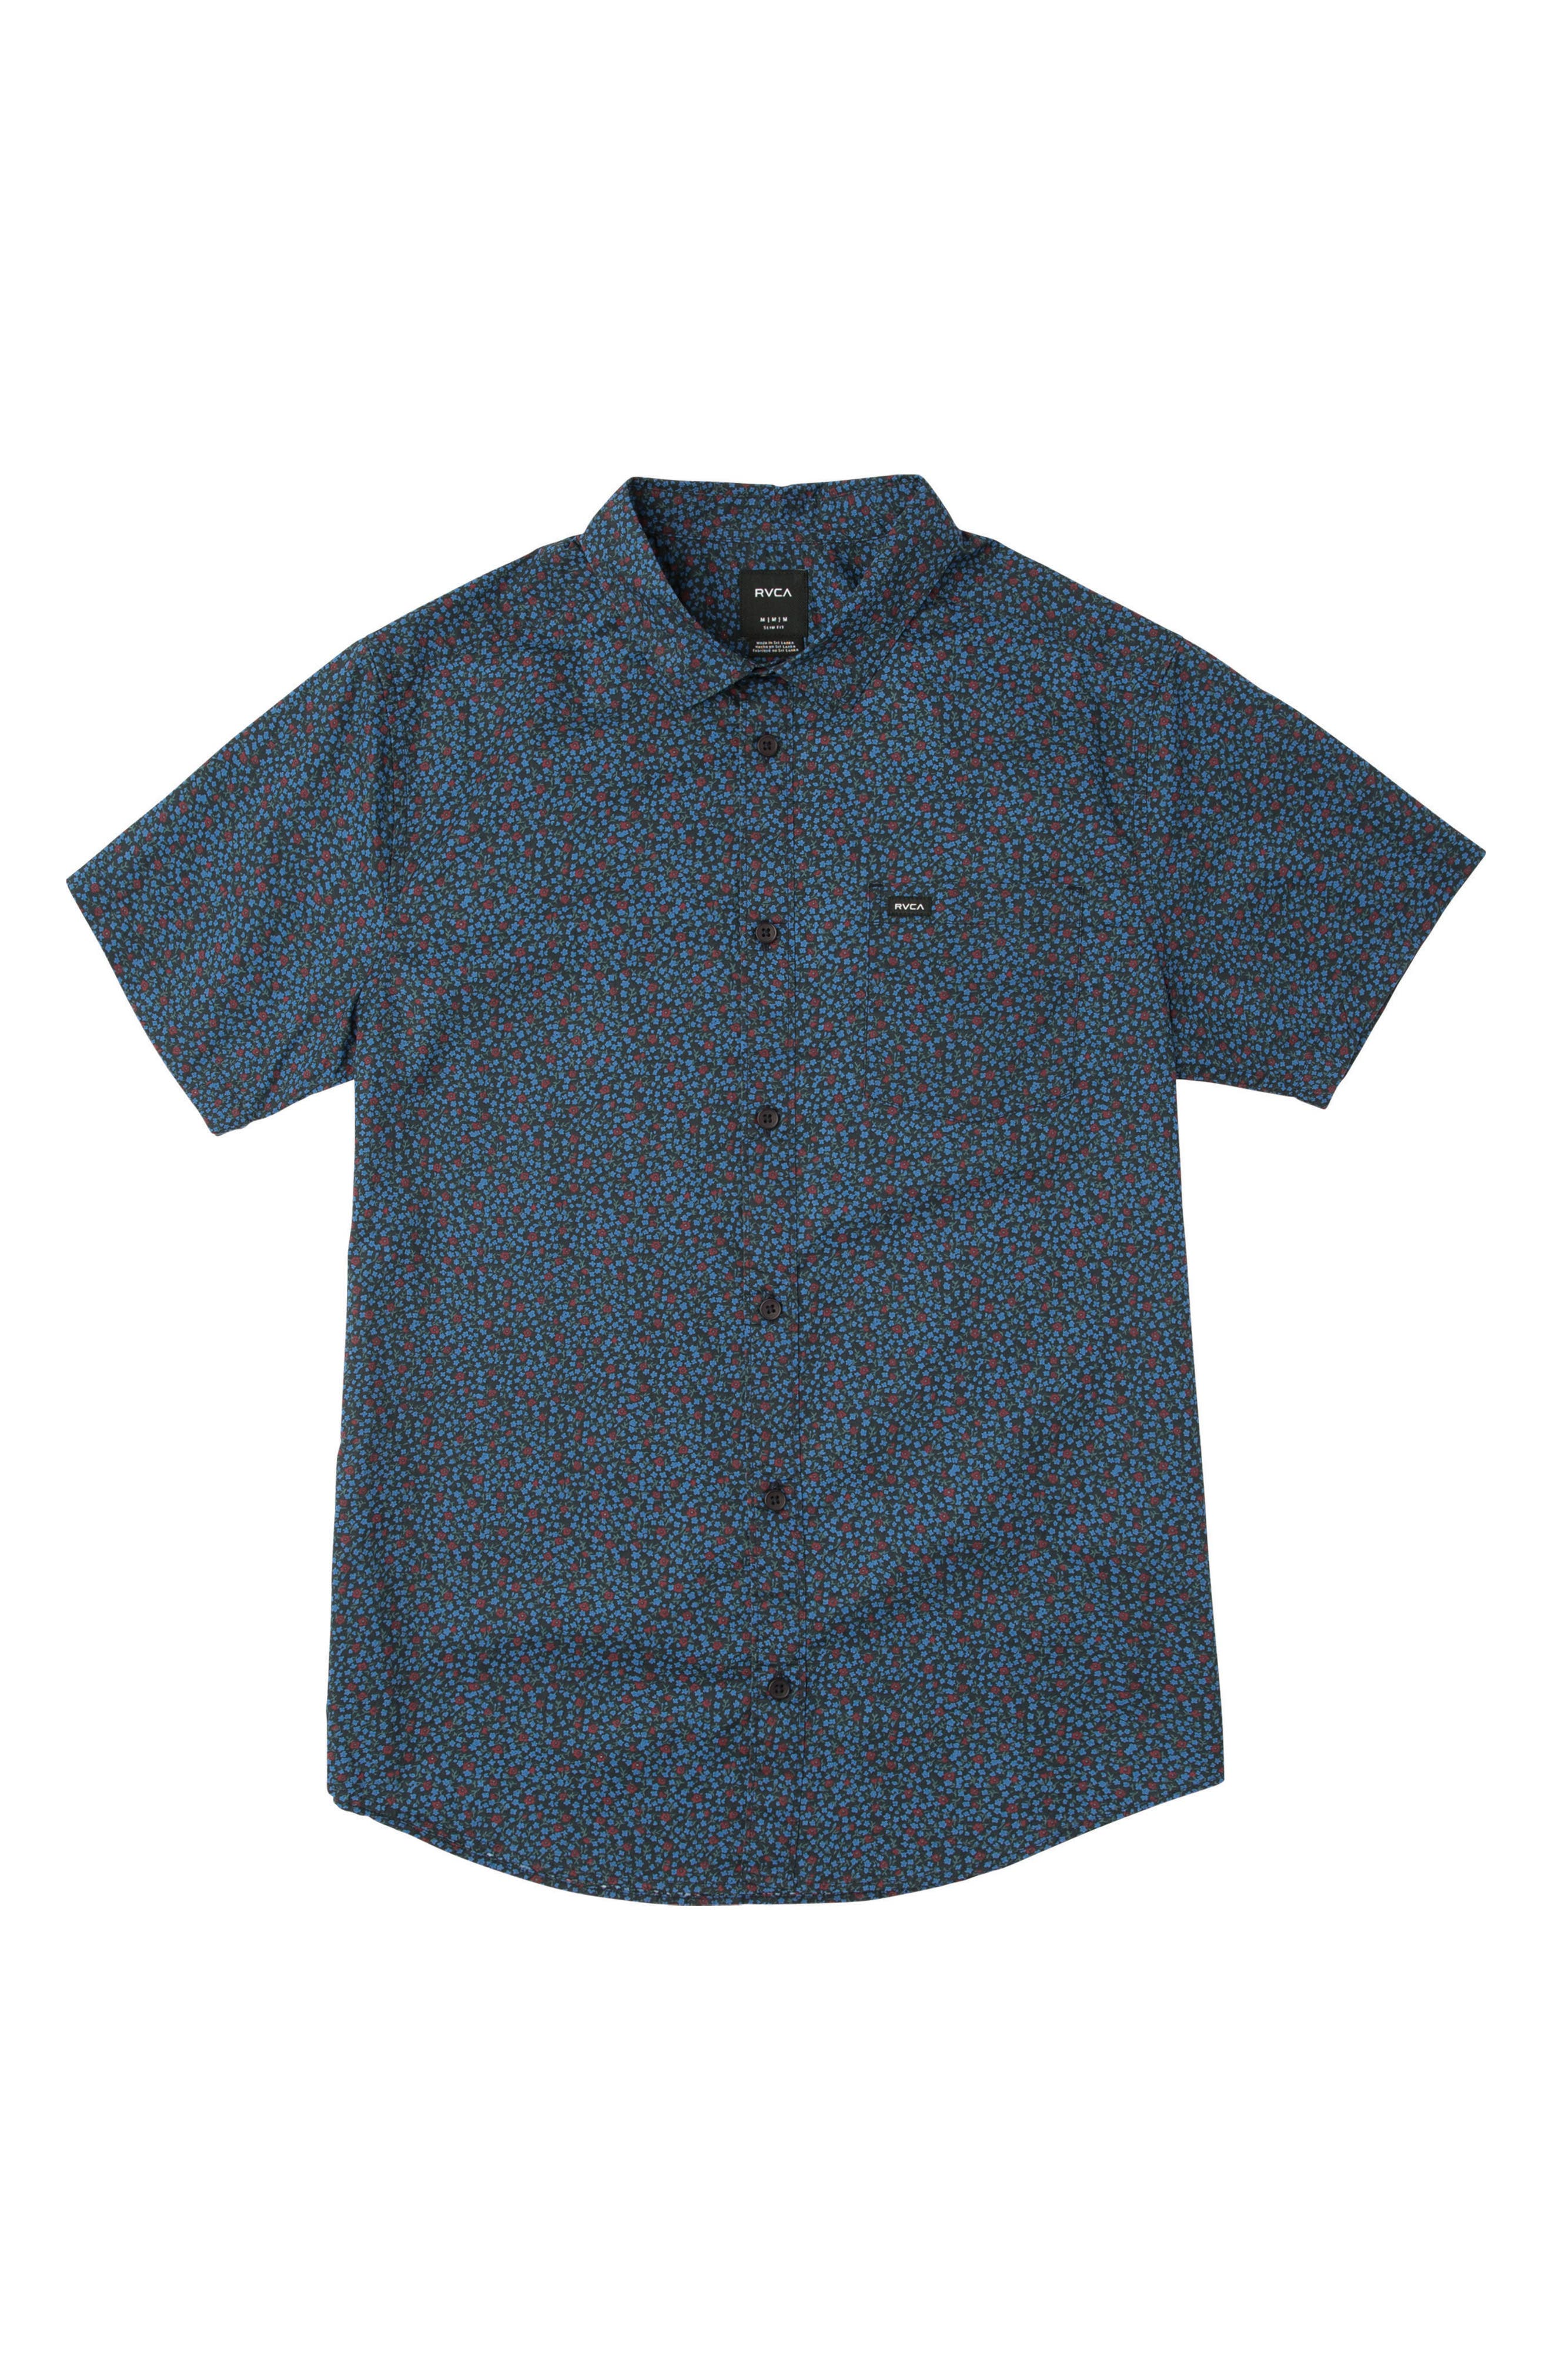 Happy Thoughts Print Woven Shirt,                             Main thumbnail 1, color,                             001